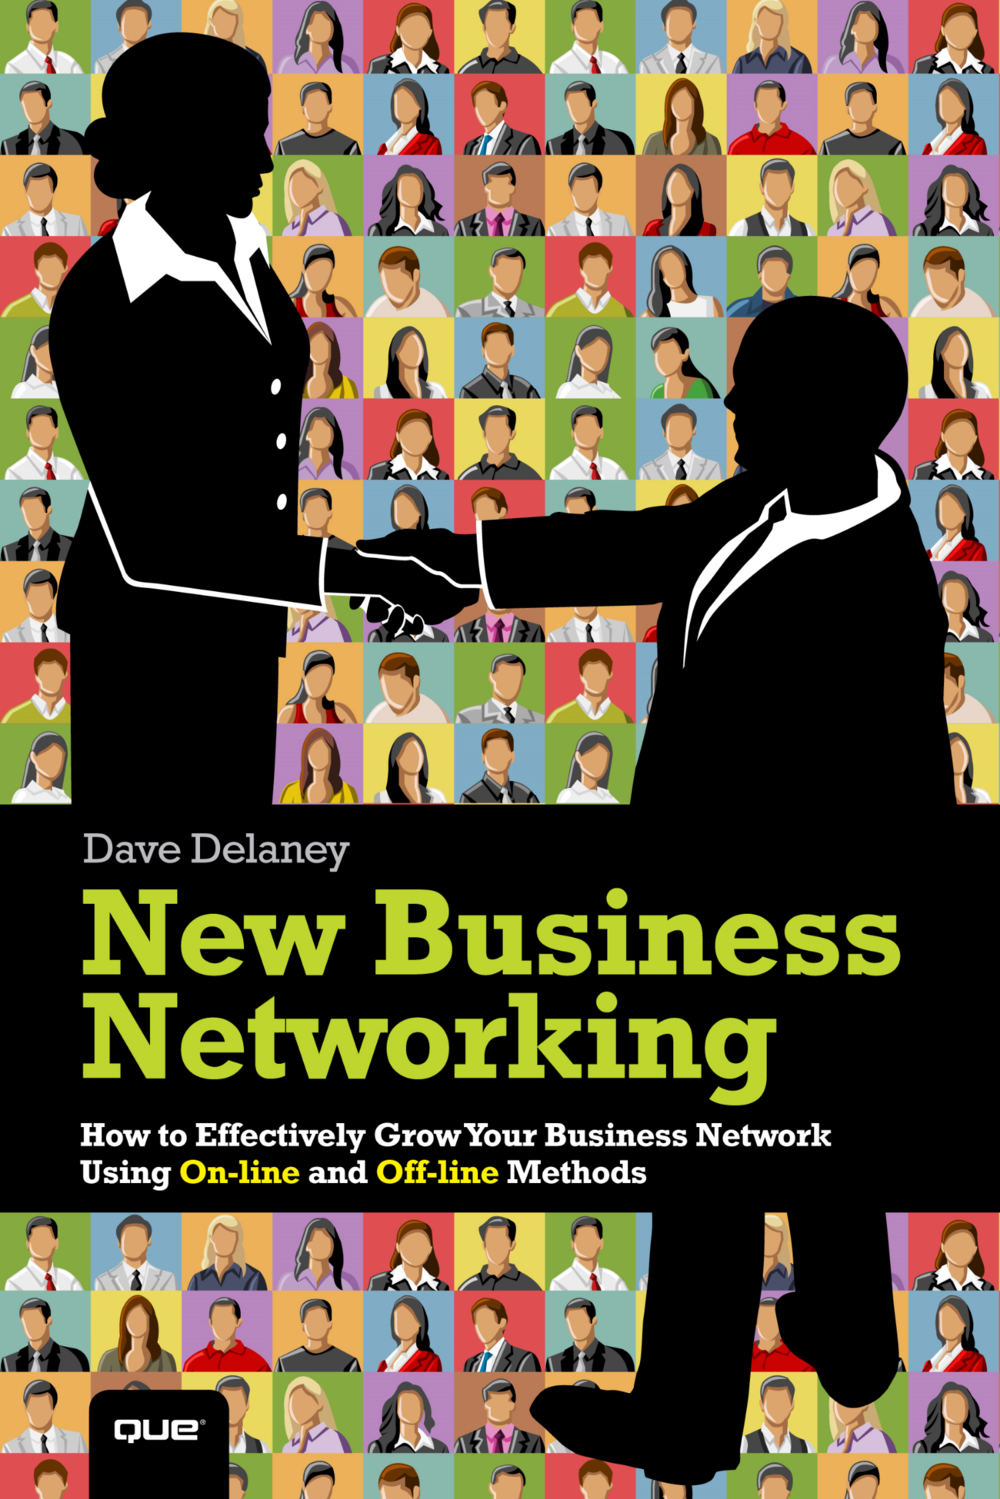 New Business Networking book by Dave Delaney